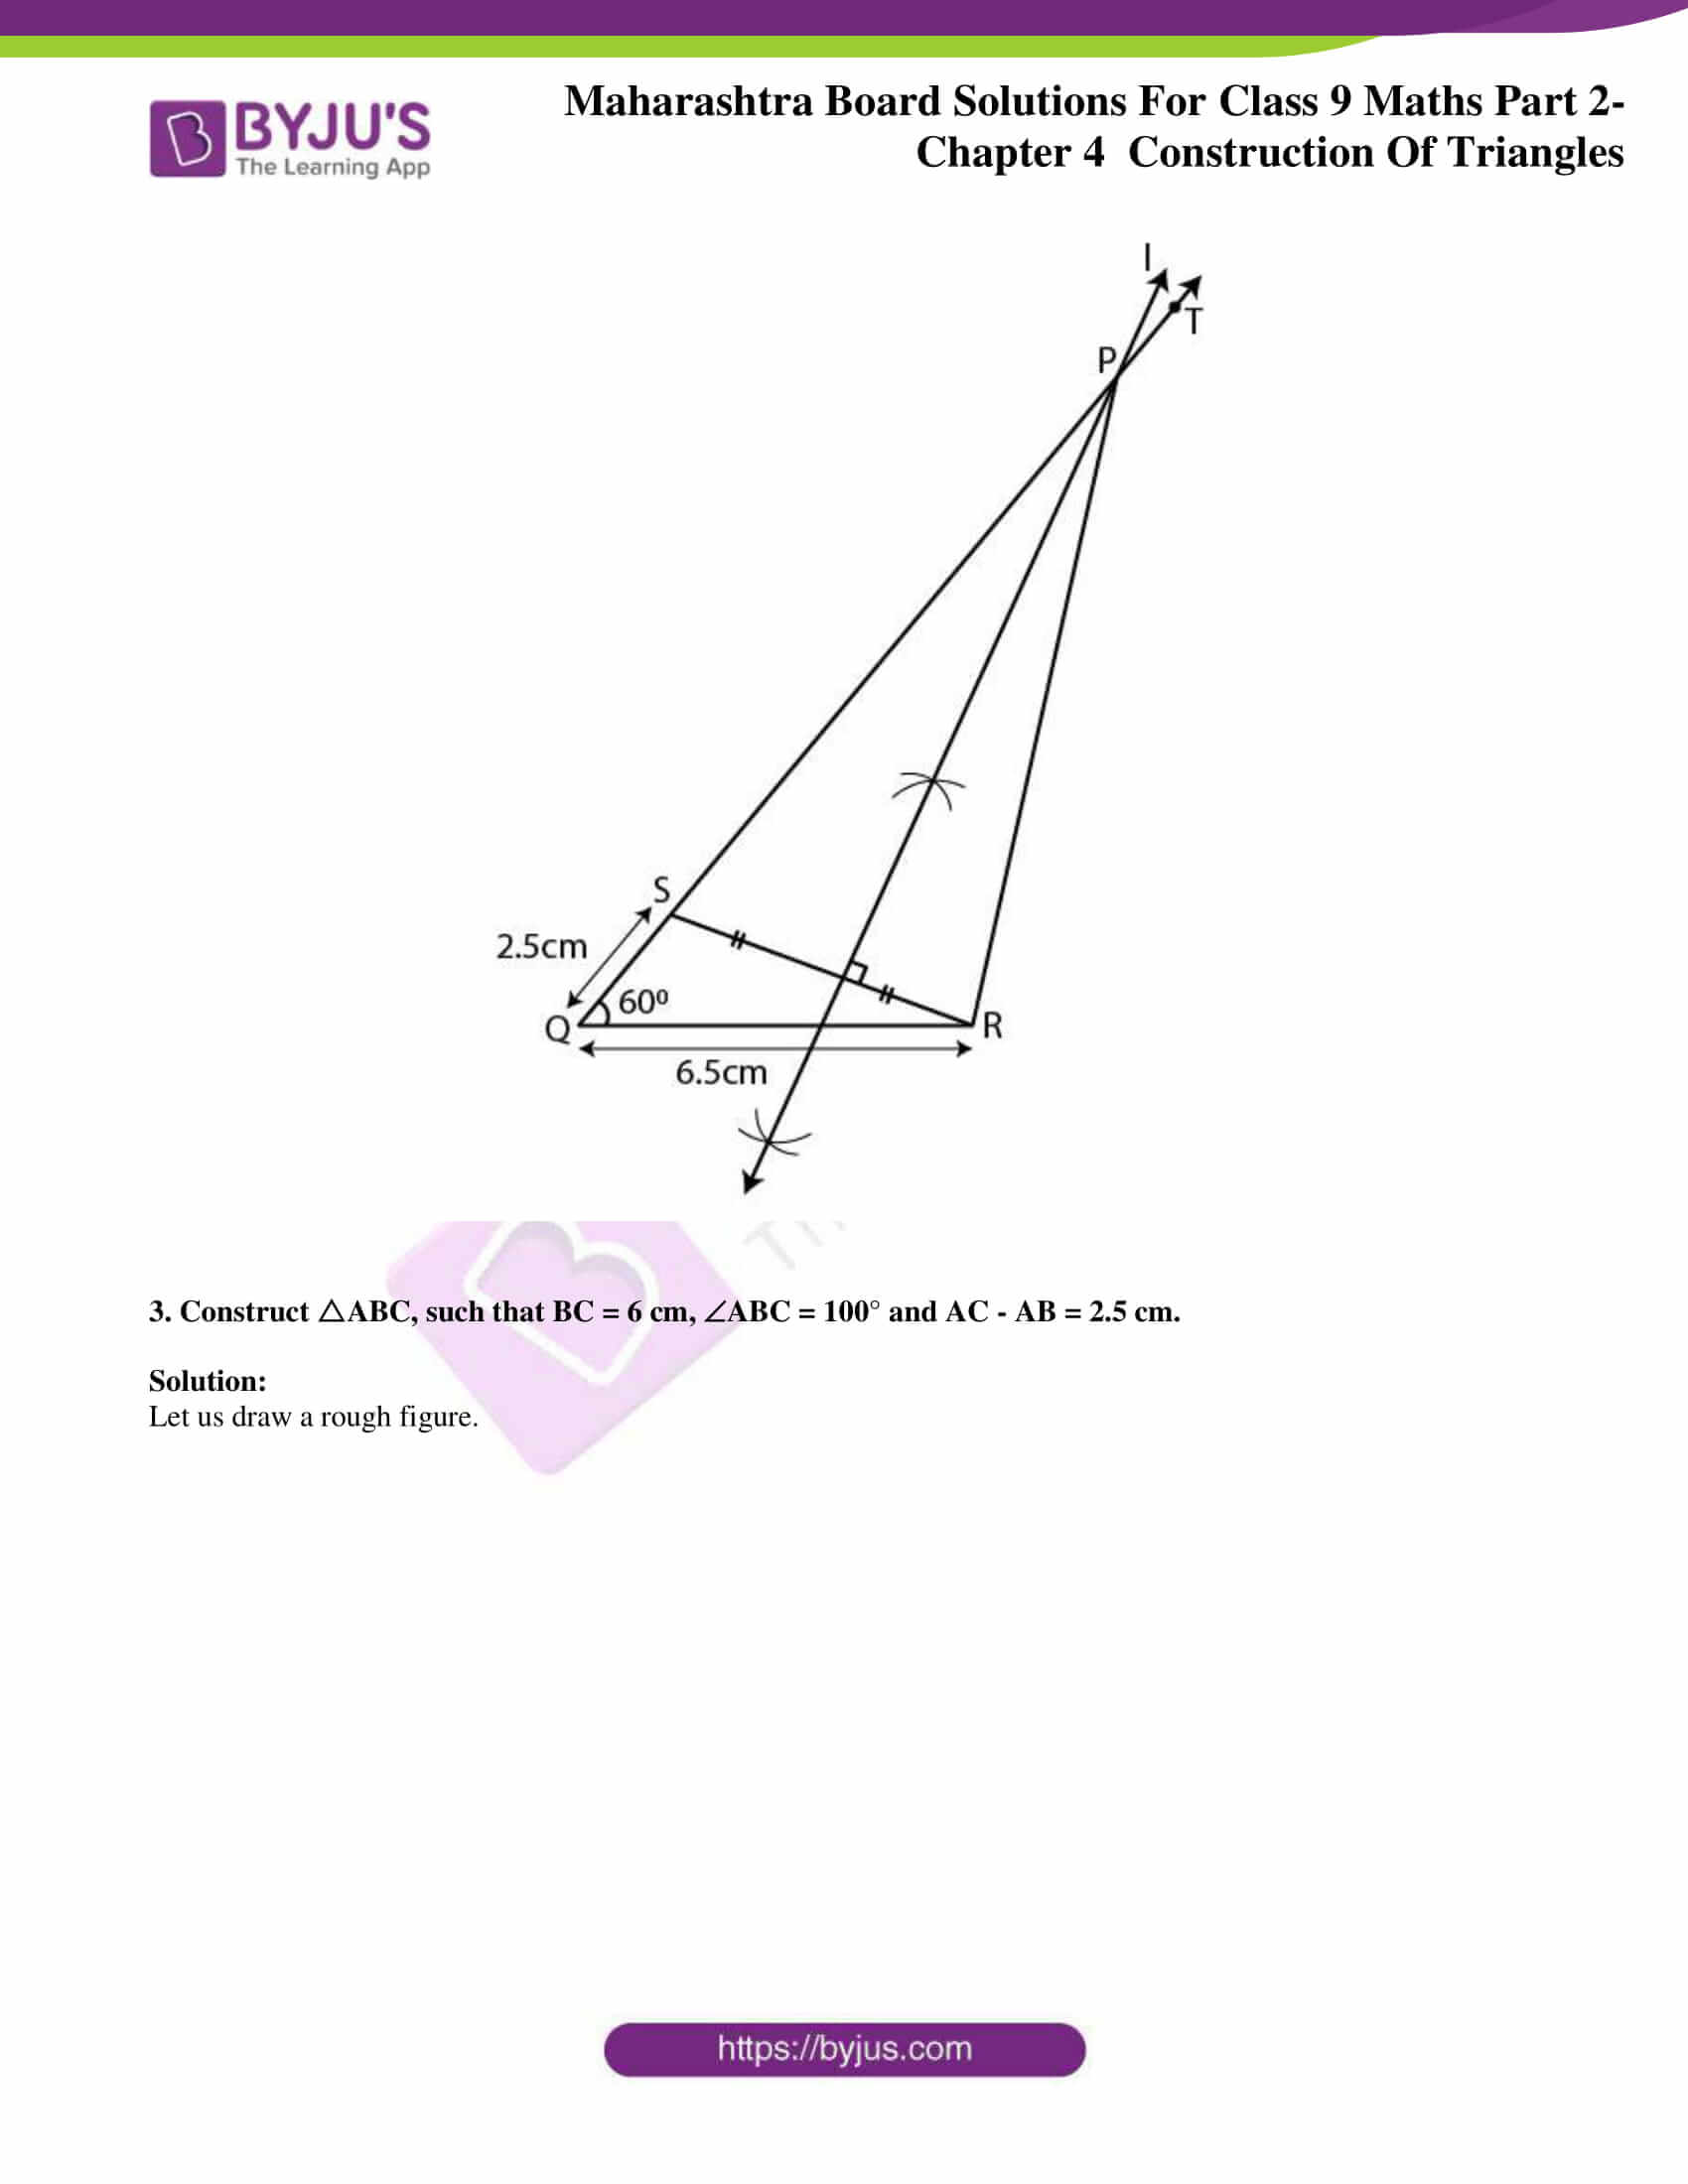 msbshse solutions for class 9 maths part 2 chapter 4 09